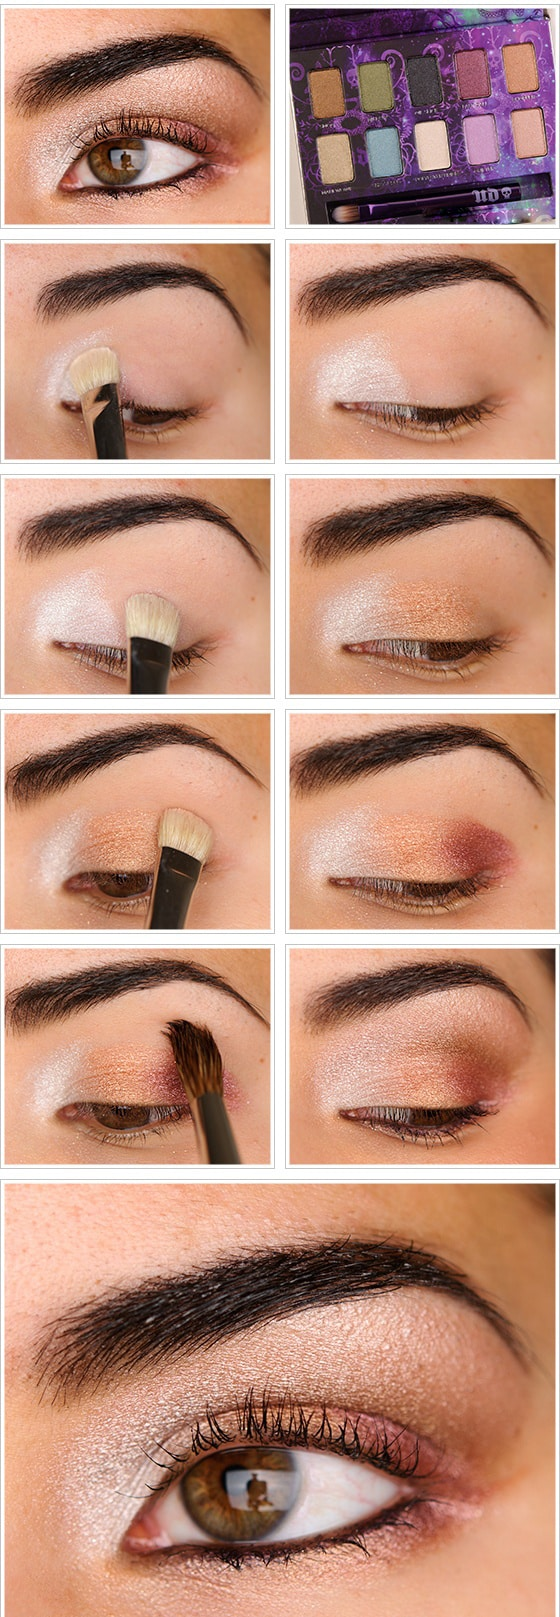 Makeup of light colors